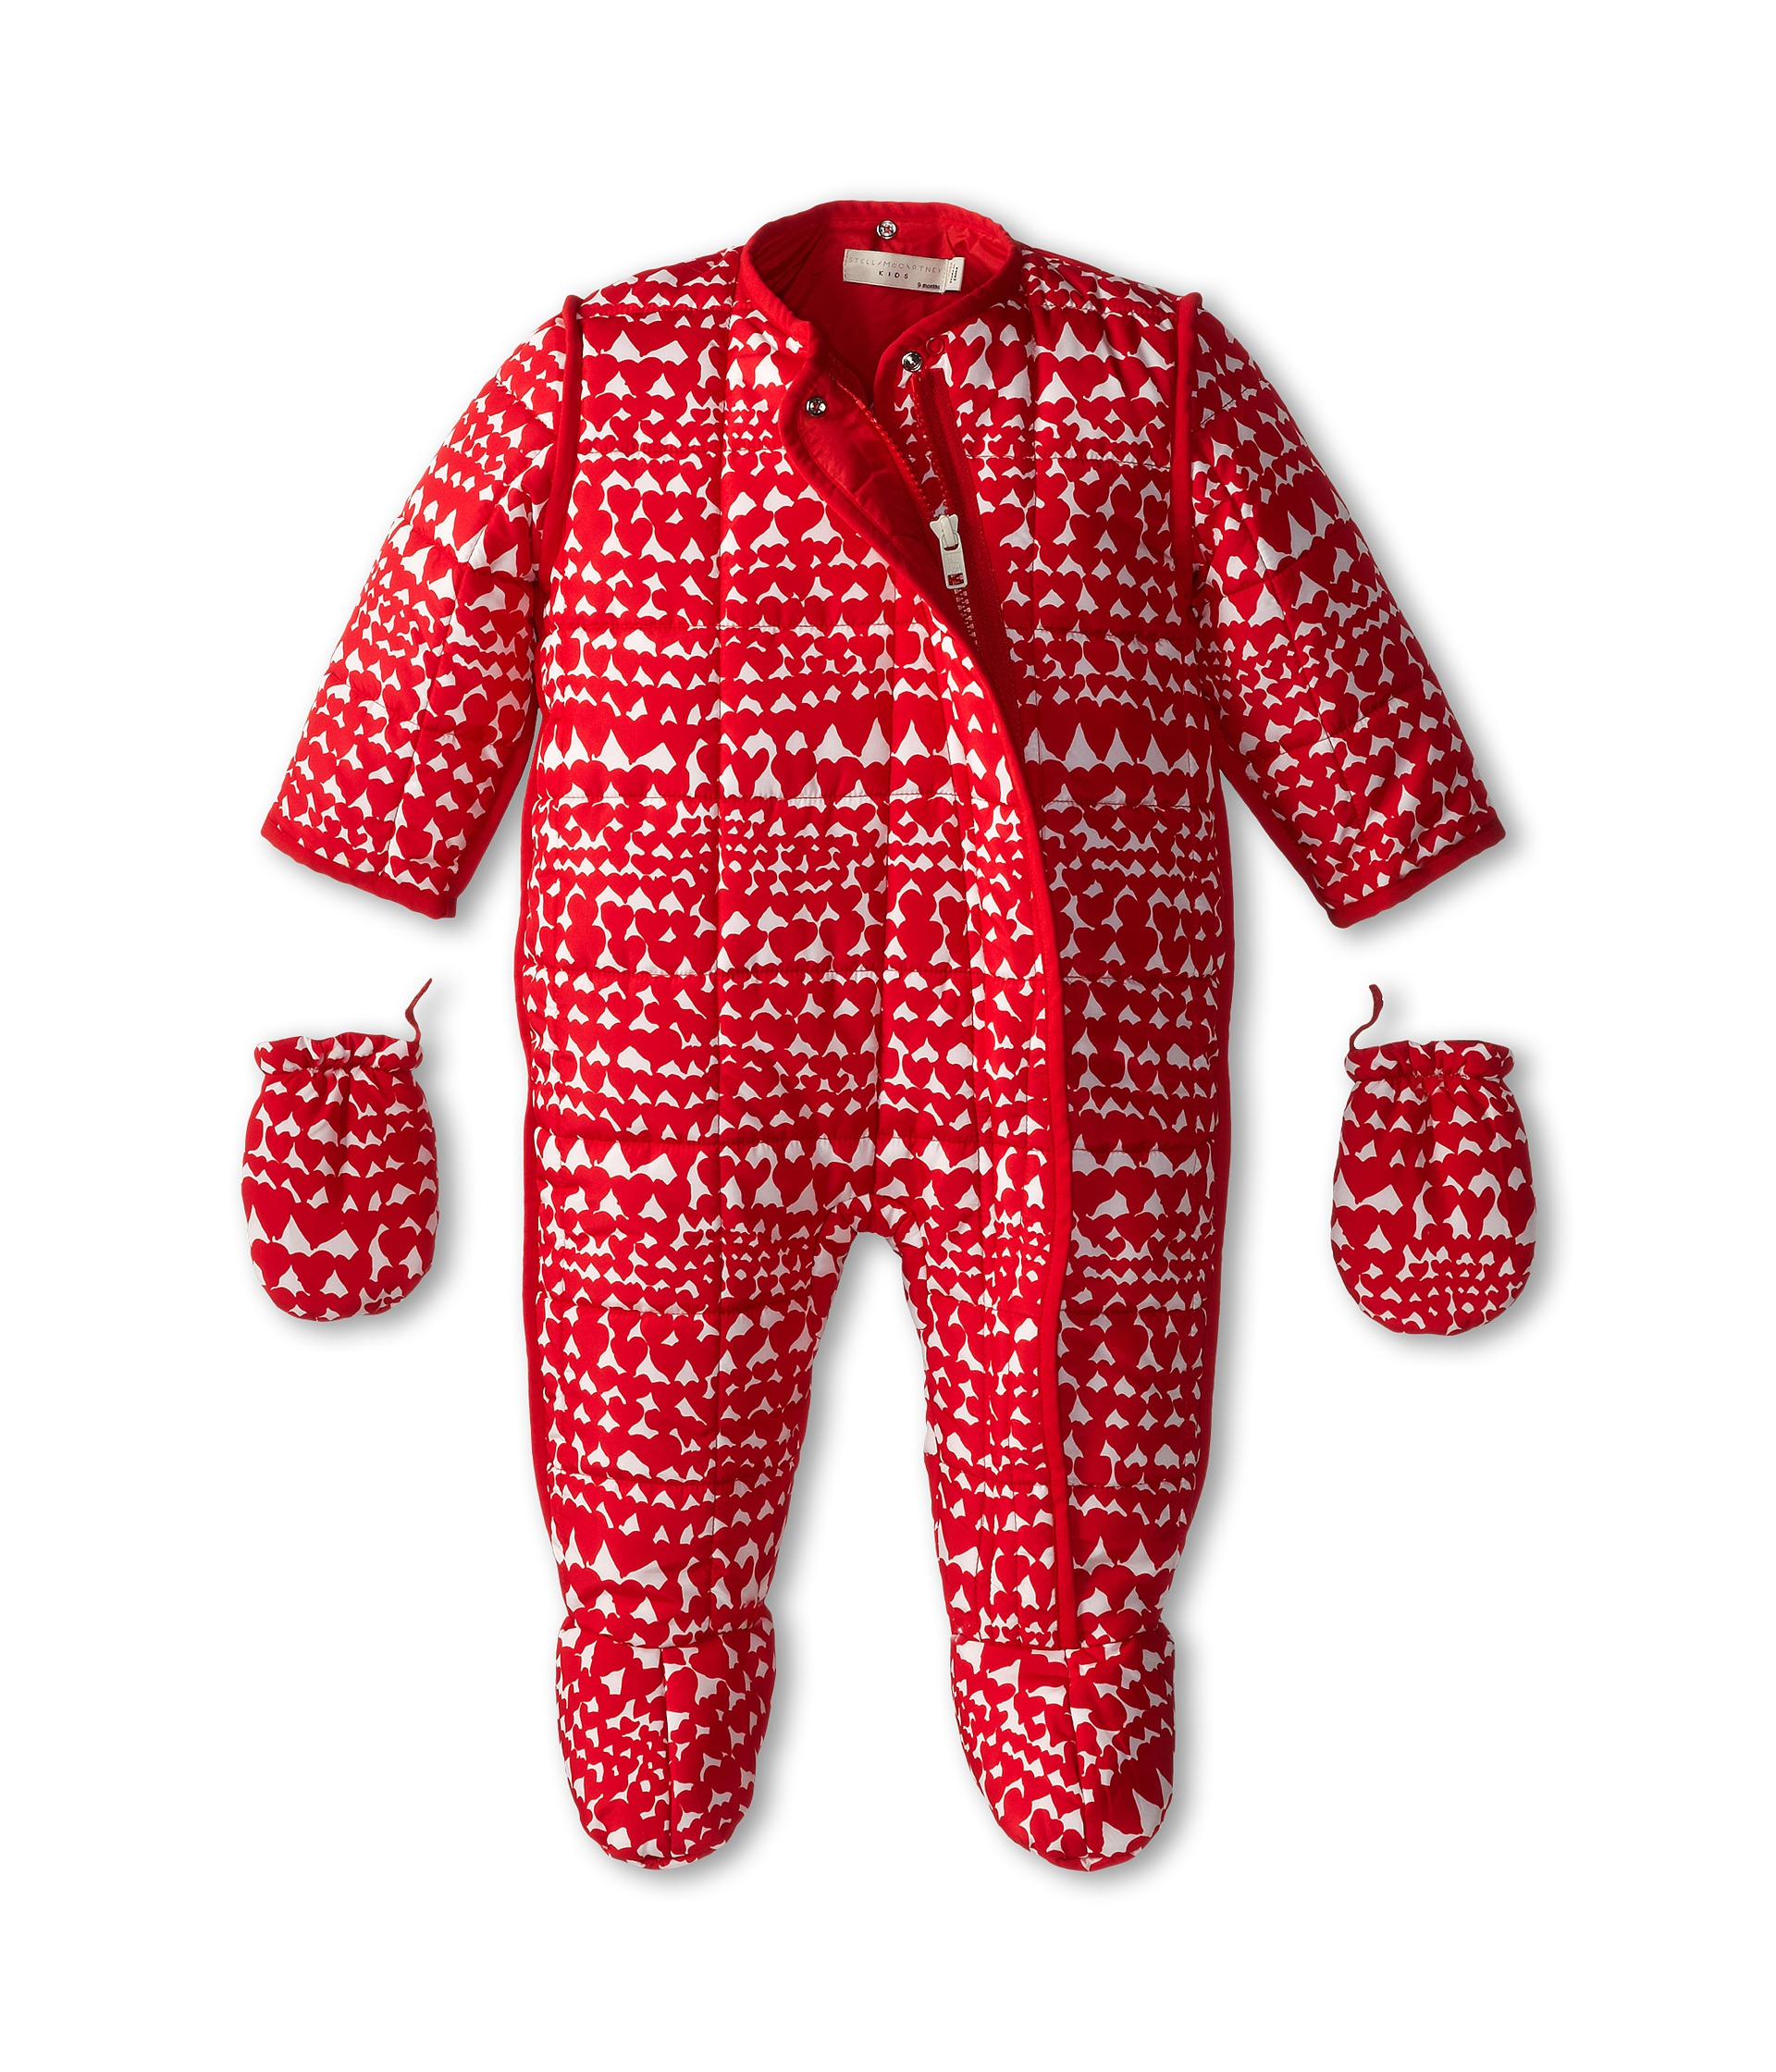 Baby Snowsuit Deals On 1001 Blocks